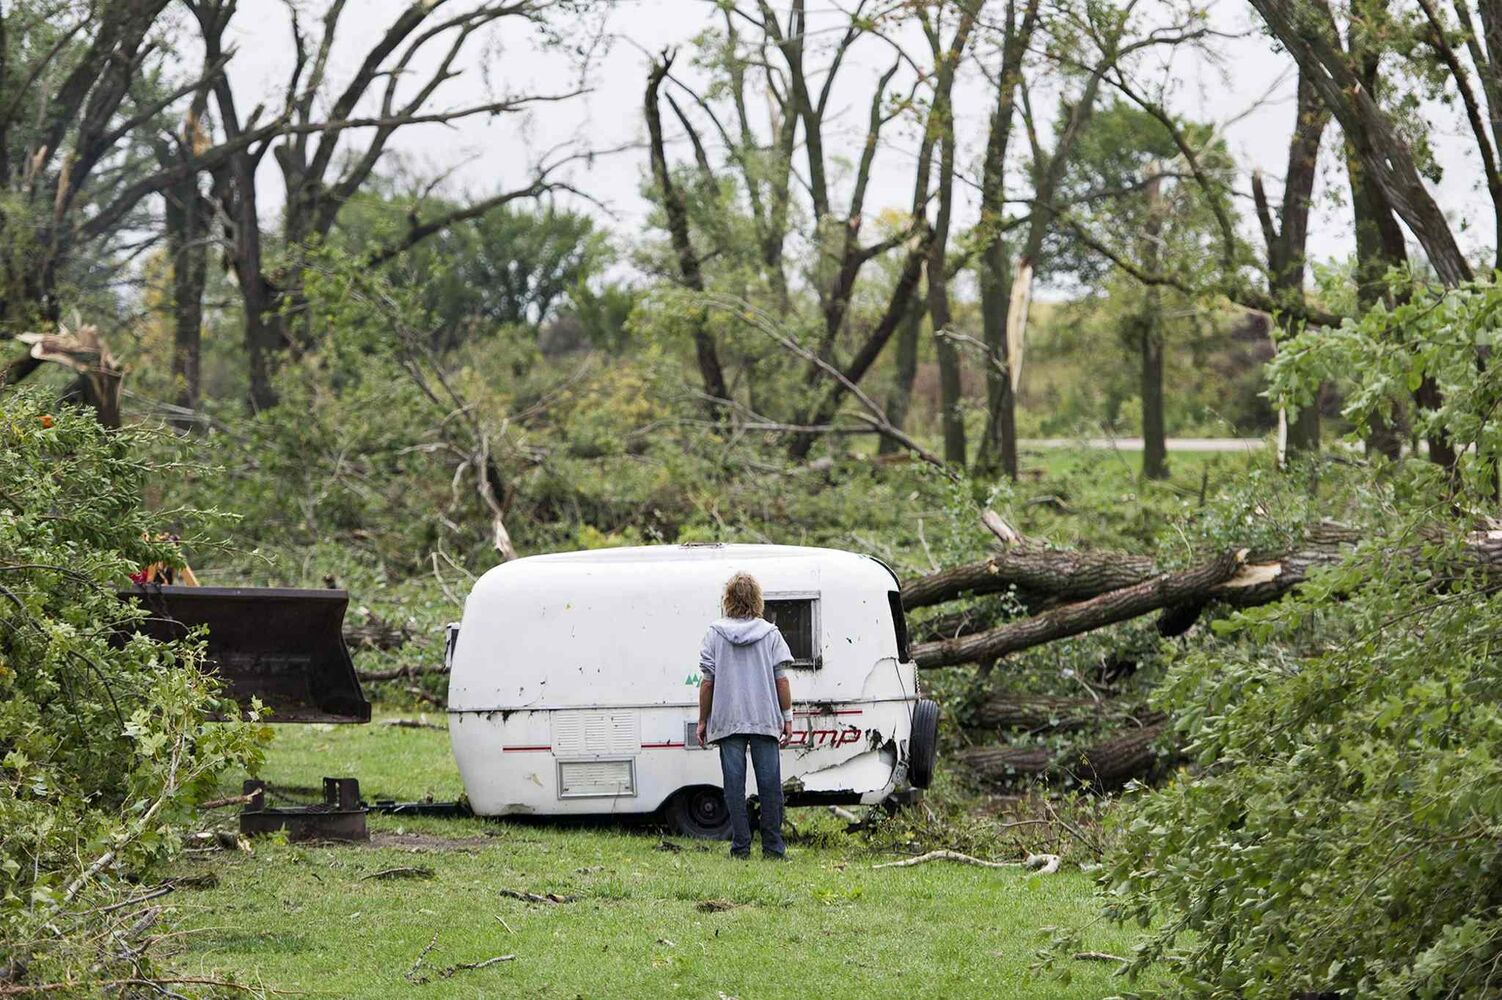 Jim Stoddard watches as his travel trailer is pulled from a ditch at the Wagon Train Lake campground on Friday in Hickman, Neb. (Ted Kirk / The Associated Press)